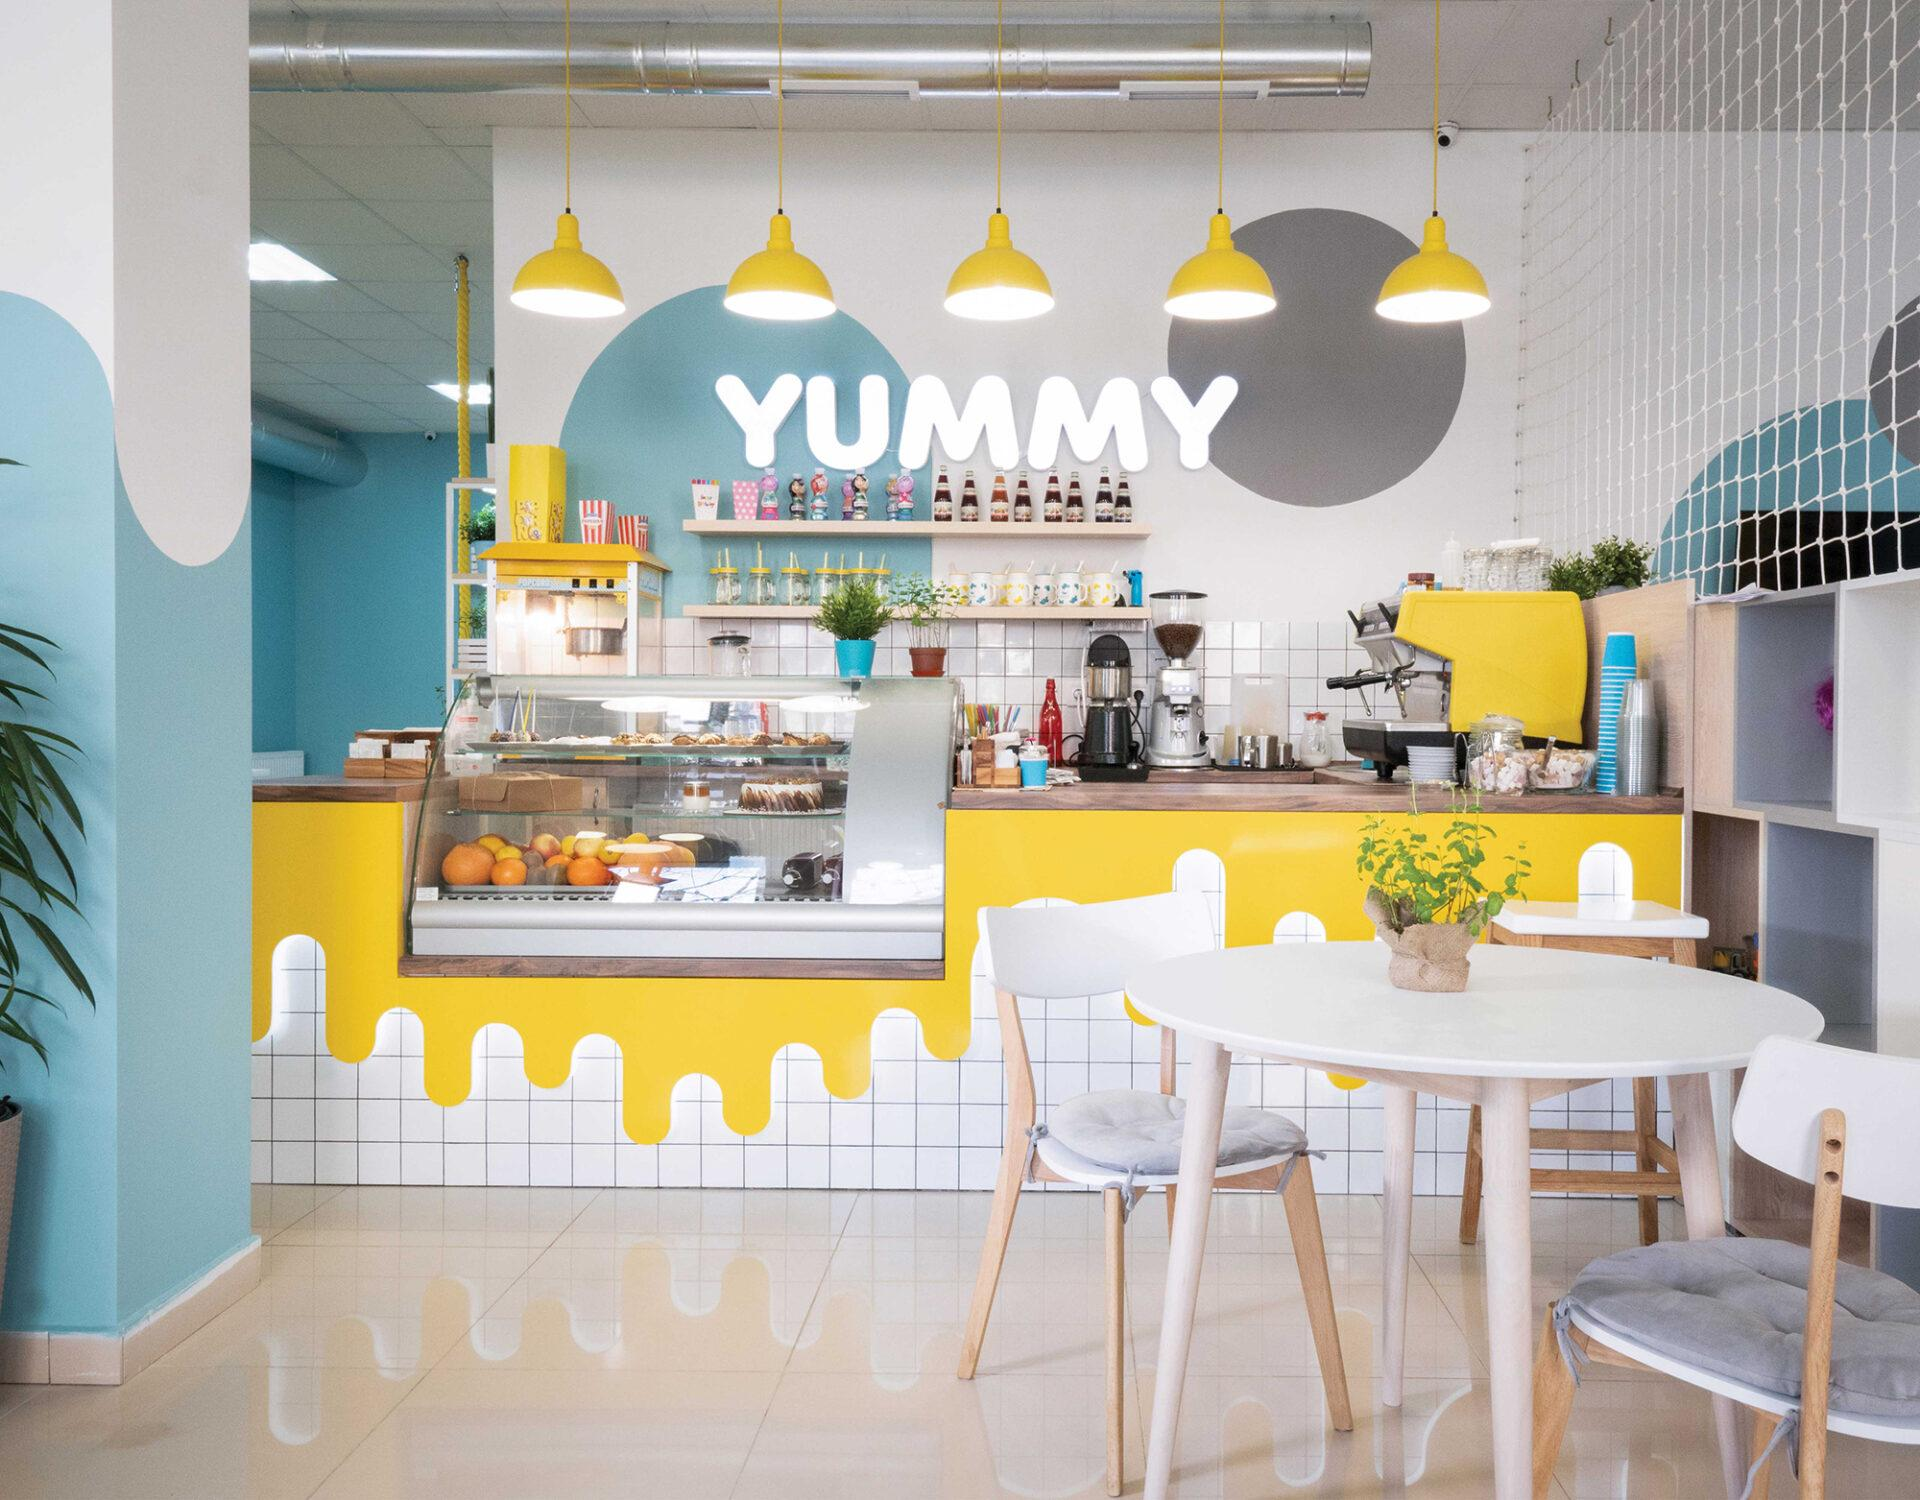 Kids Restaurant «YUMMY»